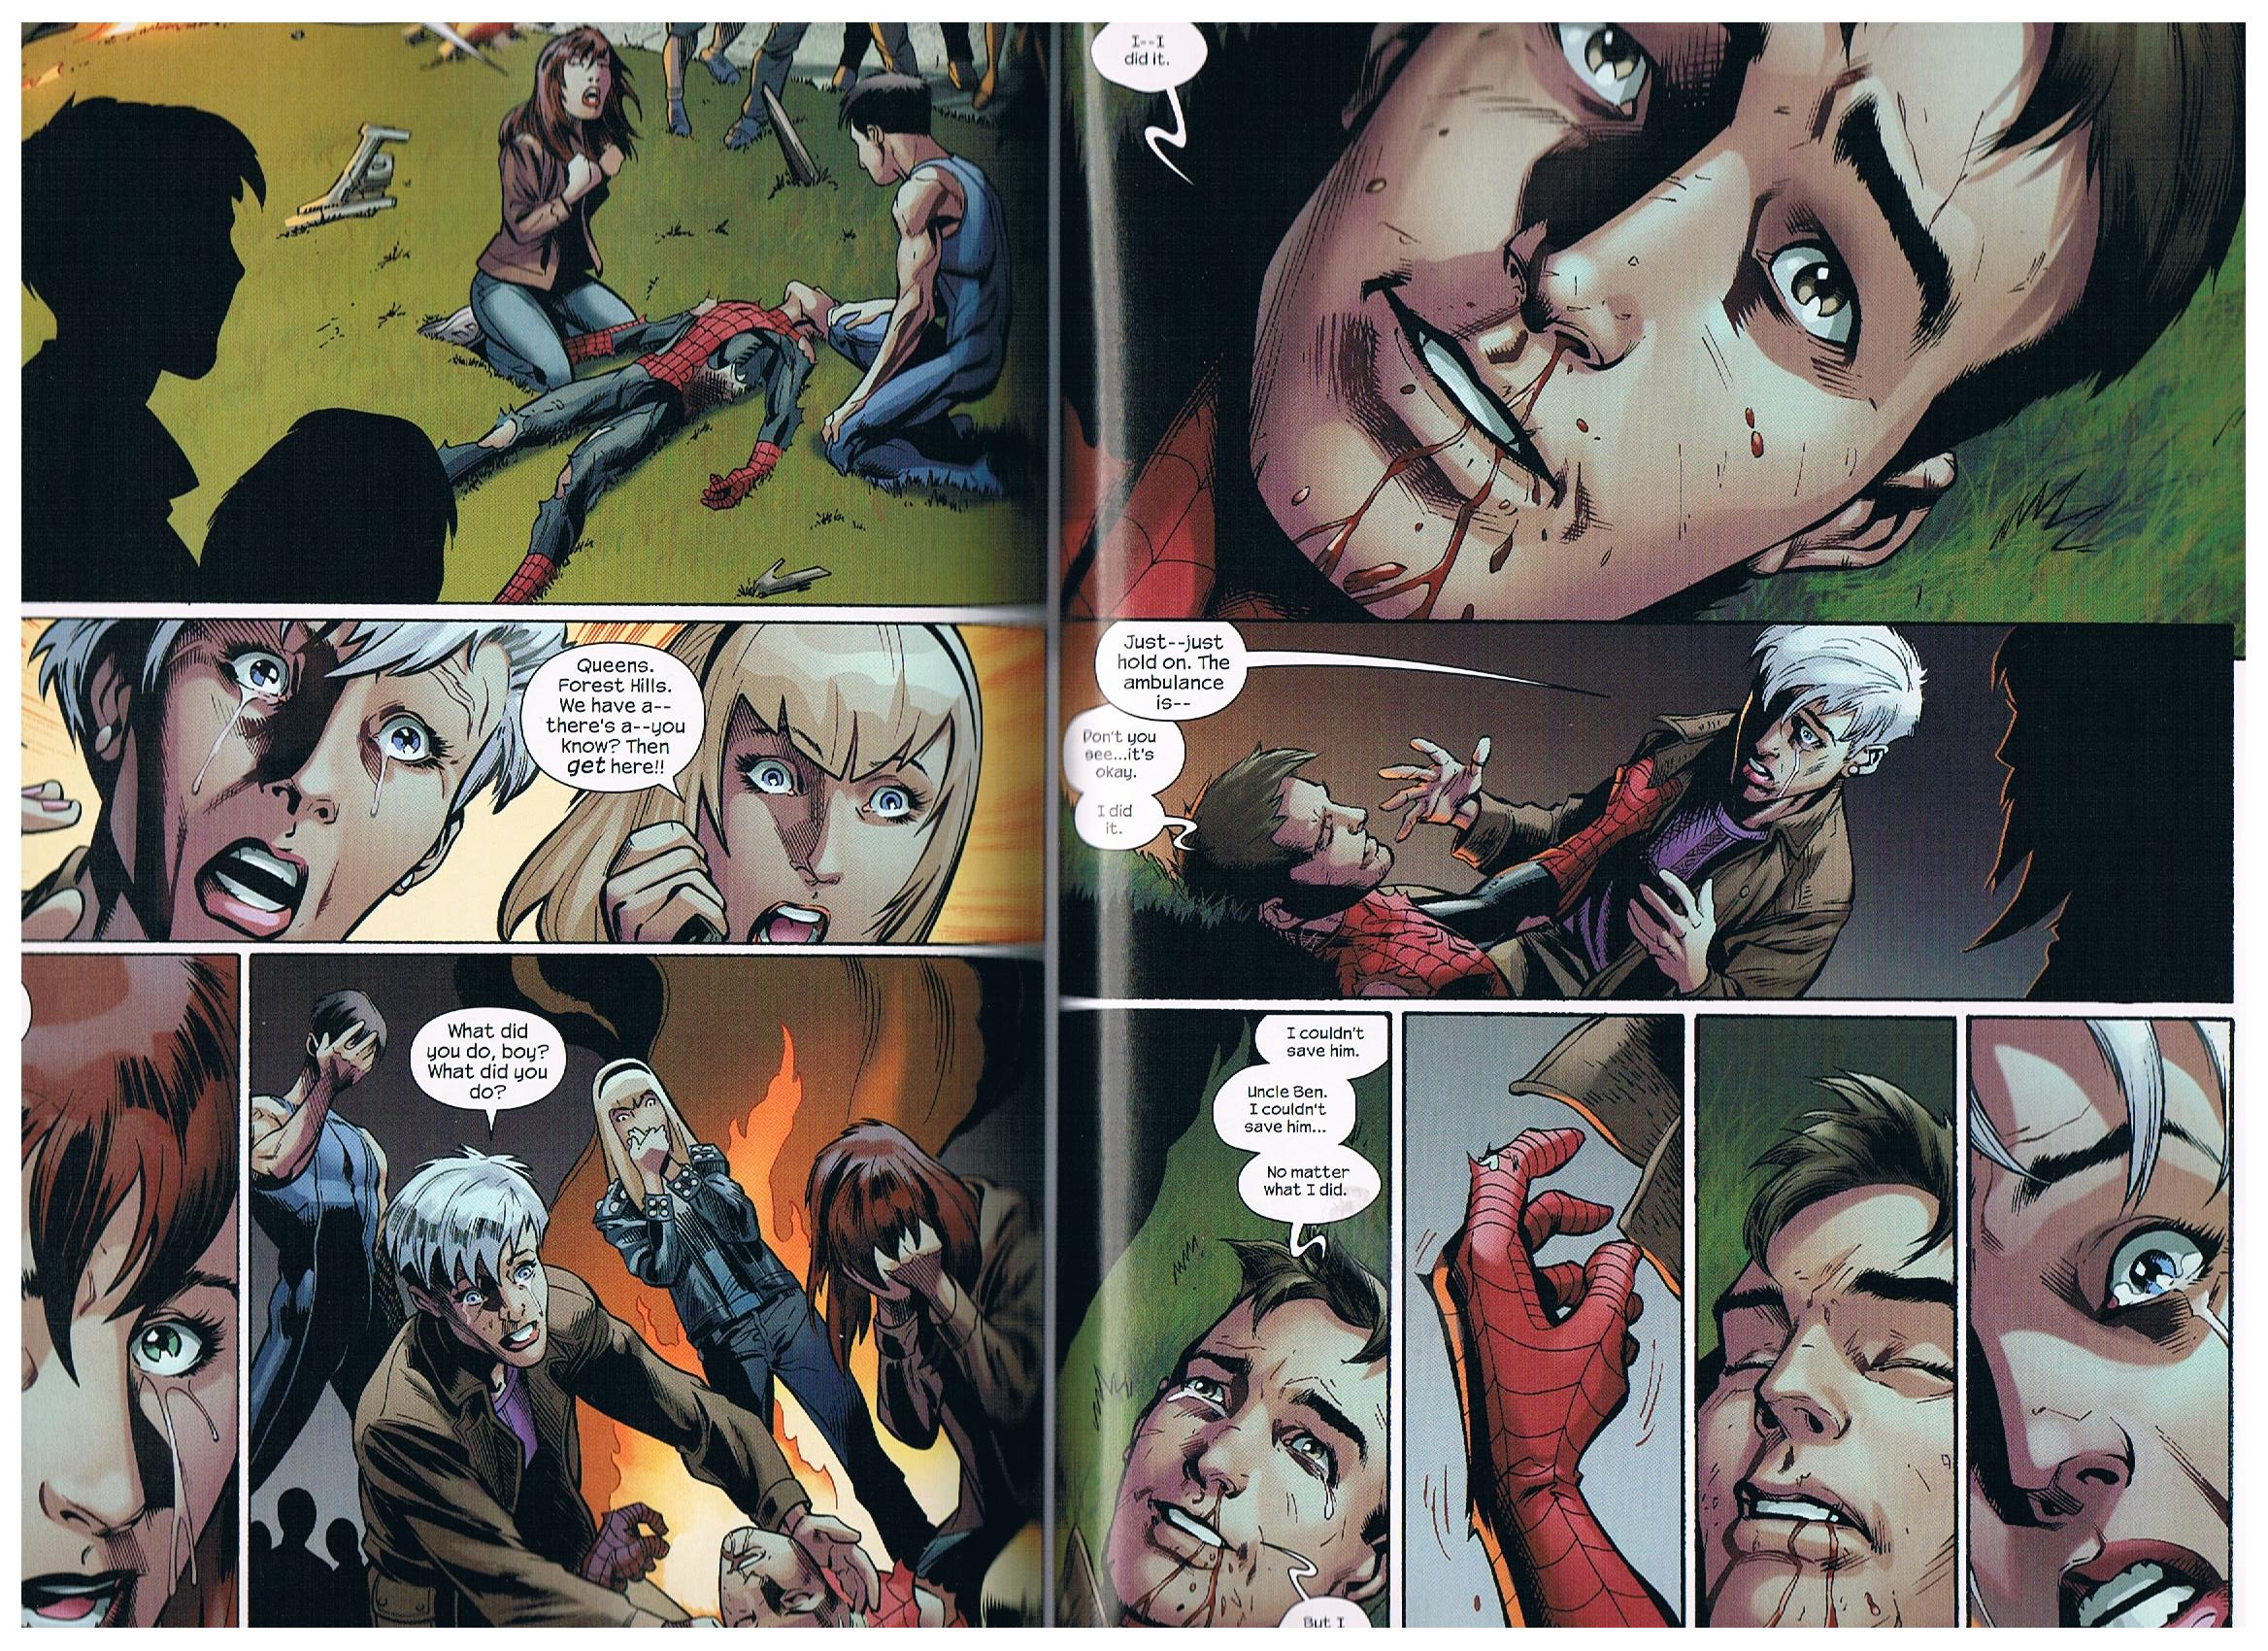 Peter Parker as Spiderman's death